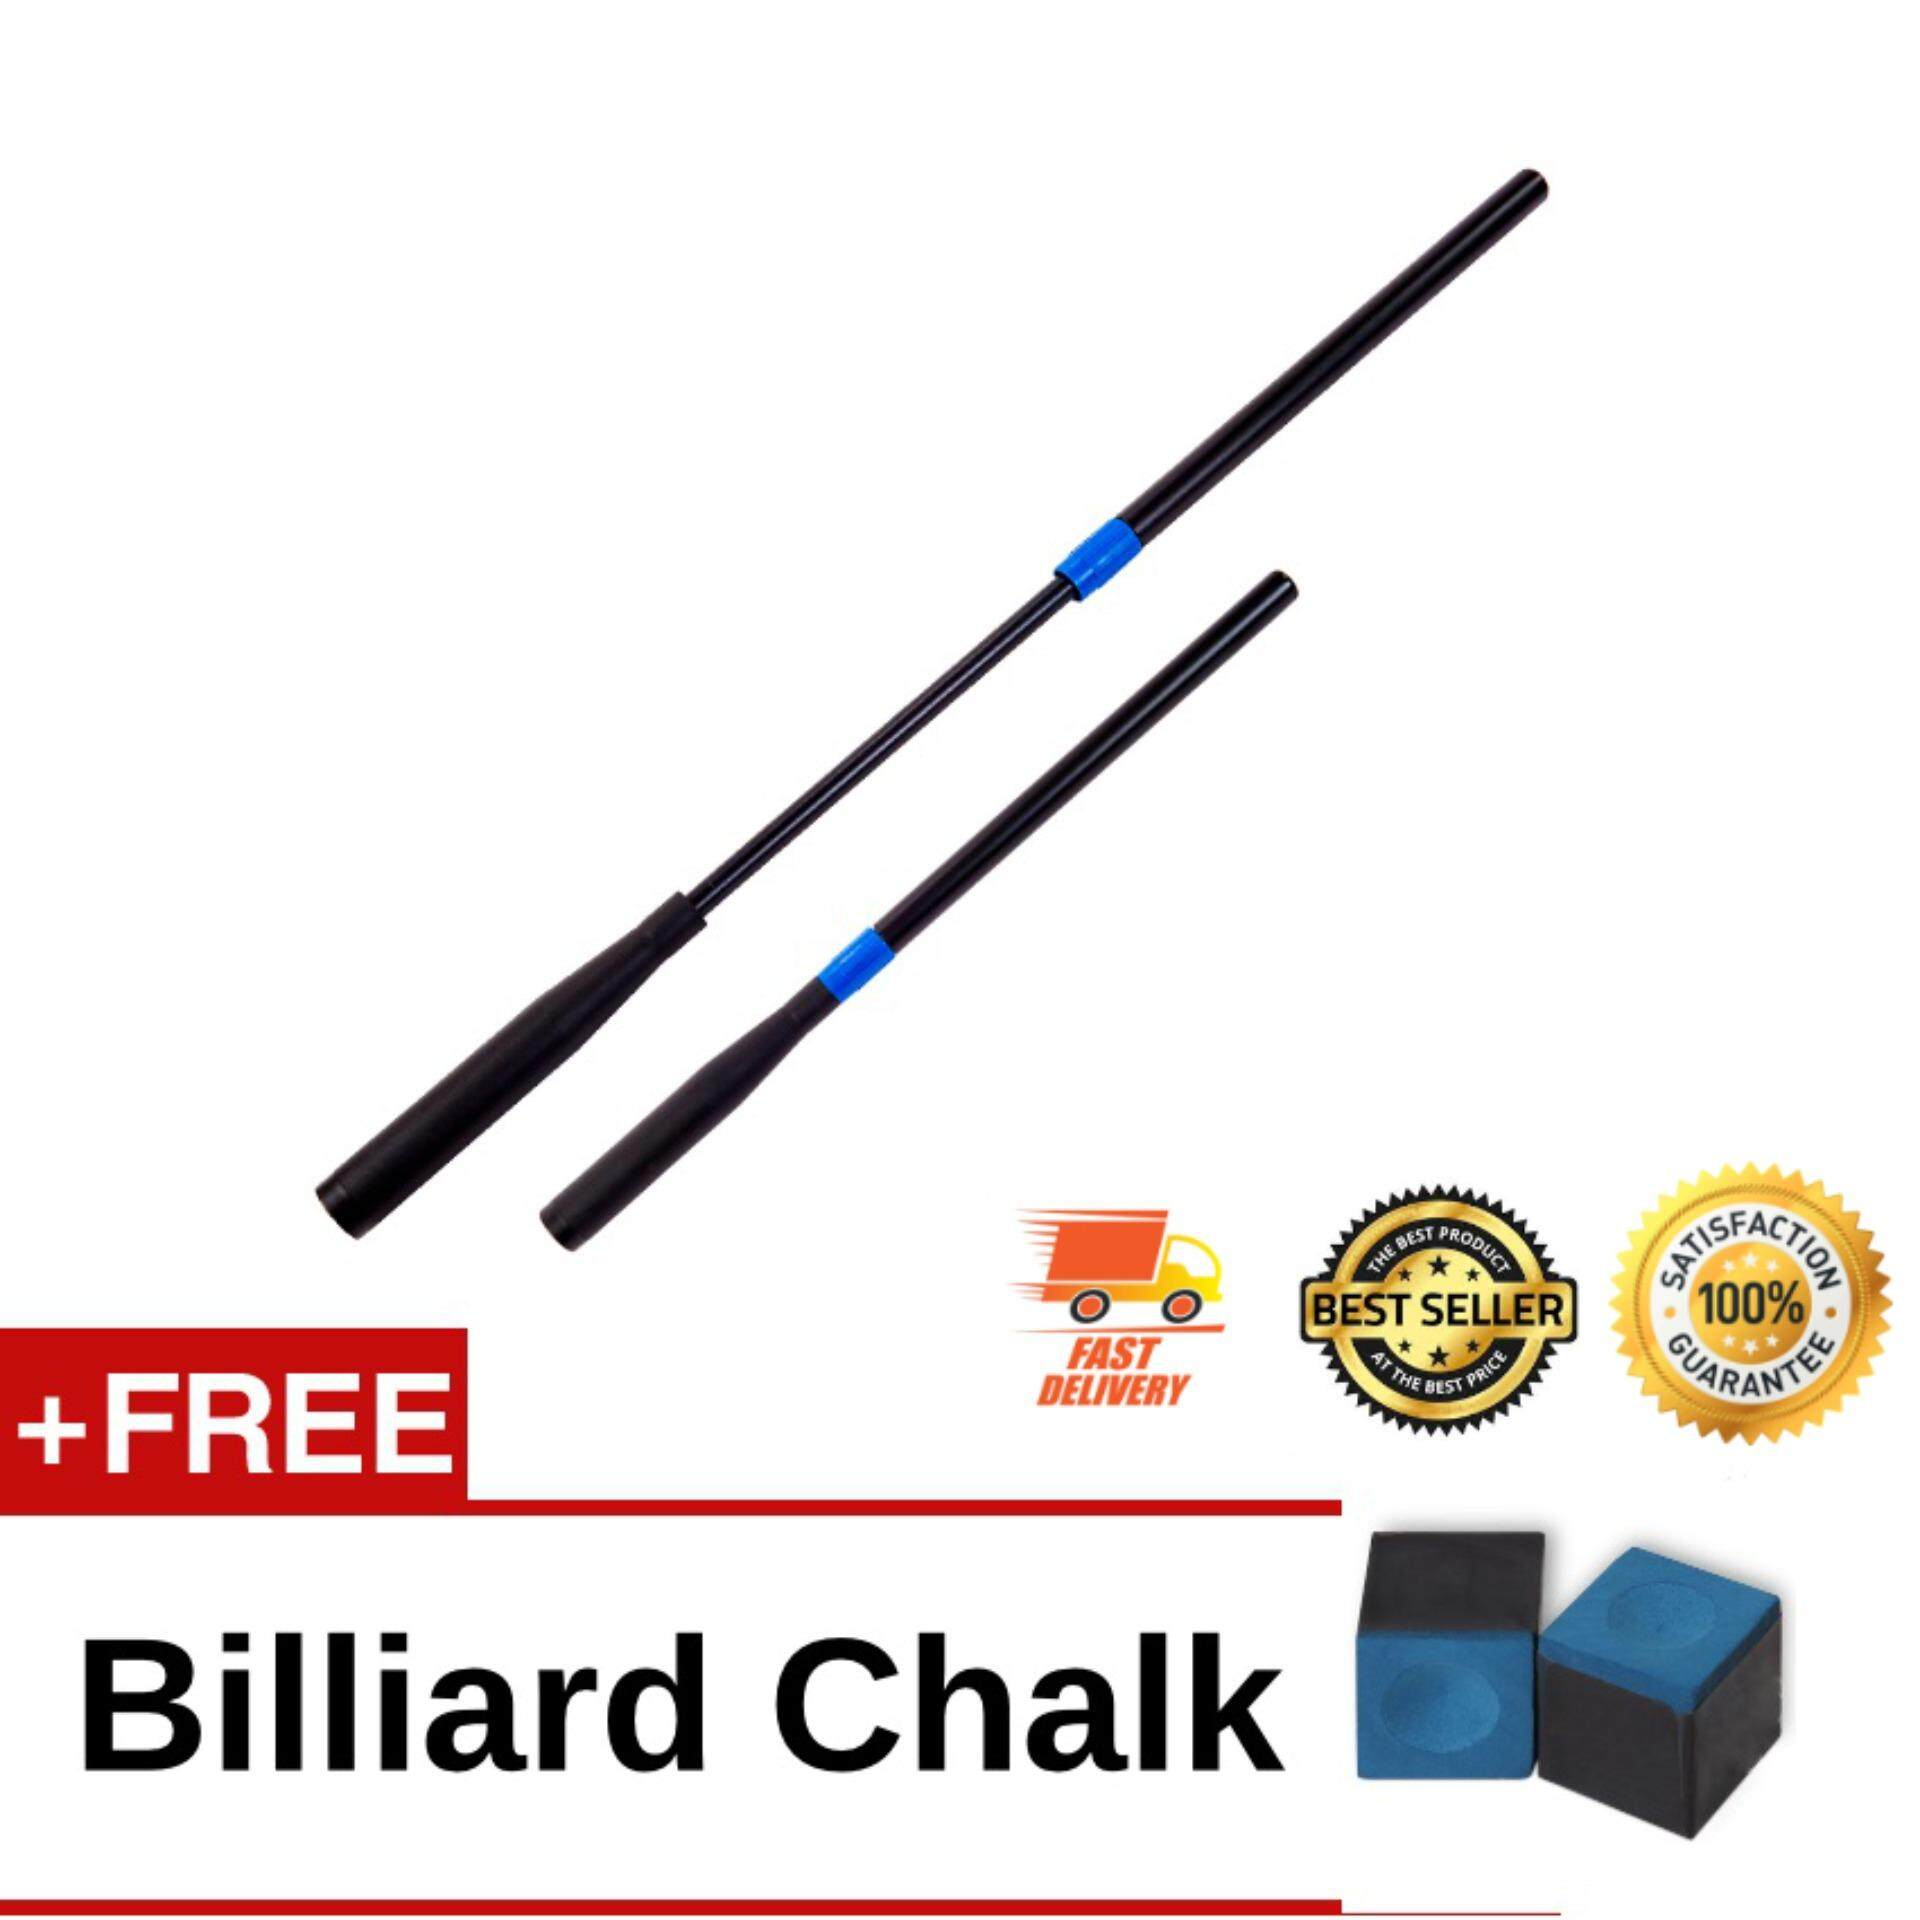 [Fit-for-all-size] Telescopic Cue Extension Extreme Extender for Billiards Snooker Pool Cue (Black)